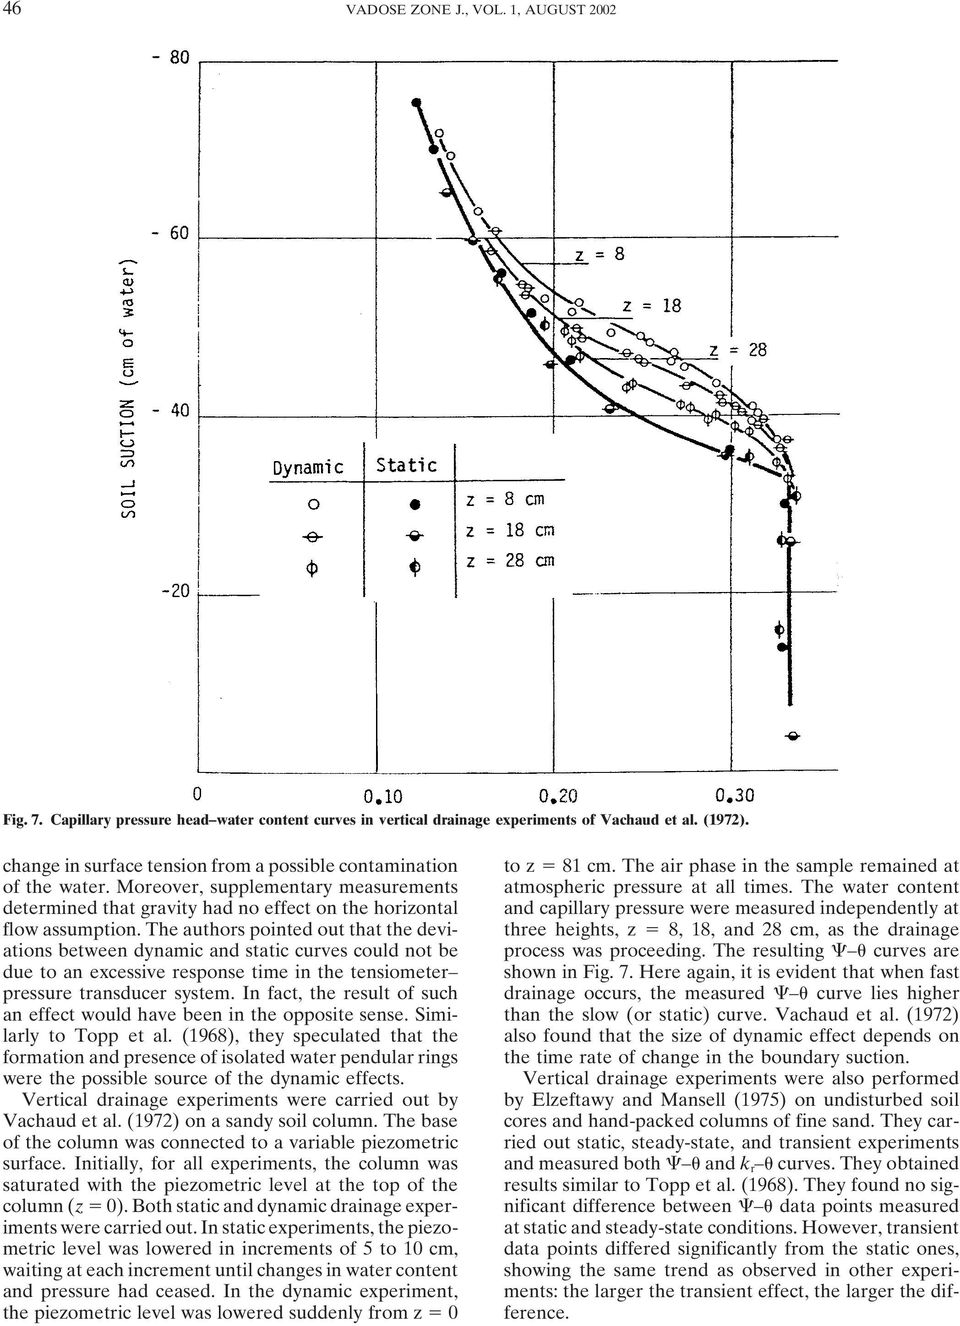 The water content and capillary pressure were measured independently at three heights, z 8, 18, and 28 cm, as the drainage process was proceeding. The resulting curves are shown in Fig. 7.